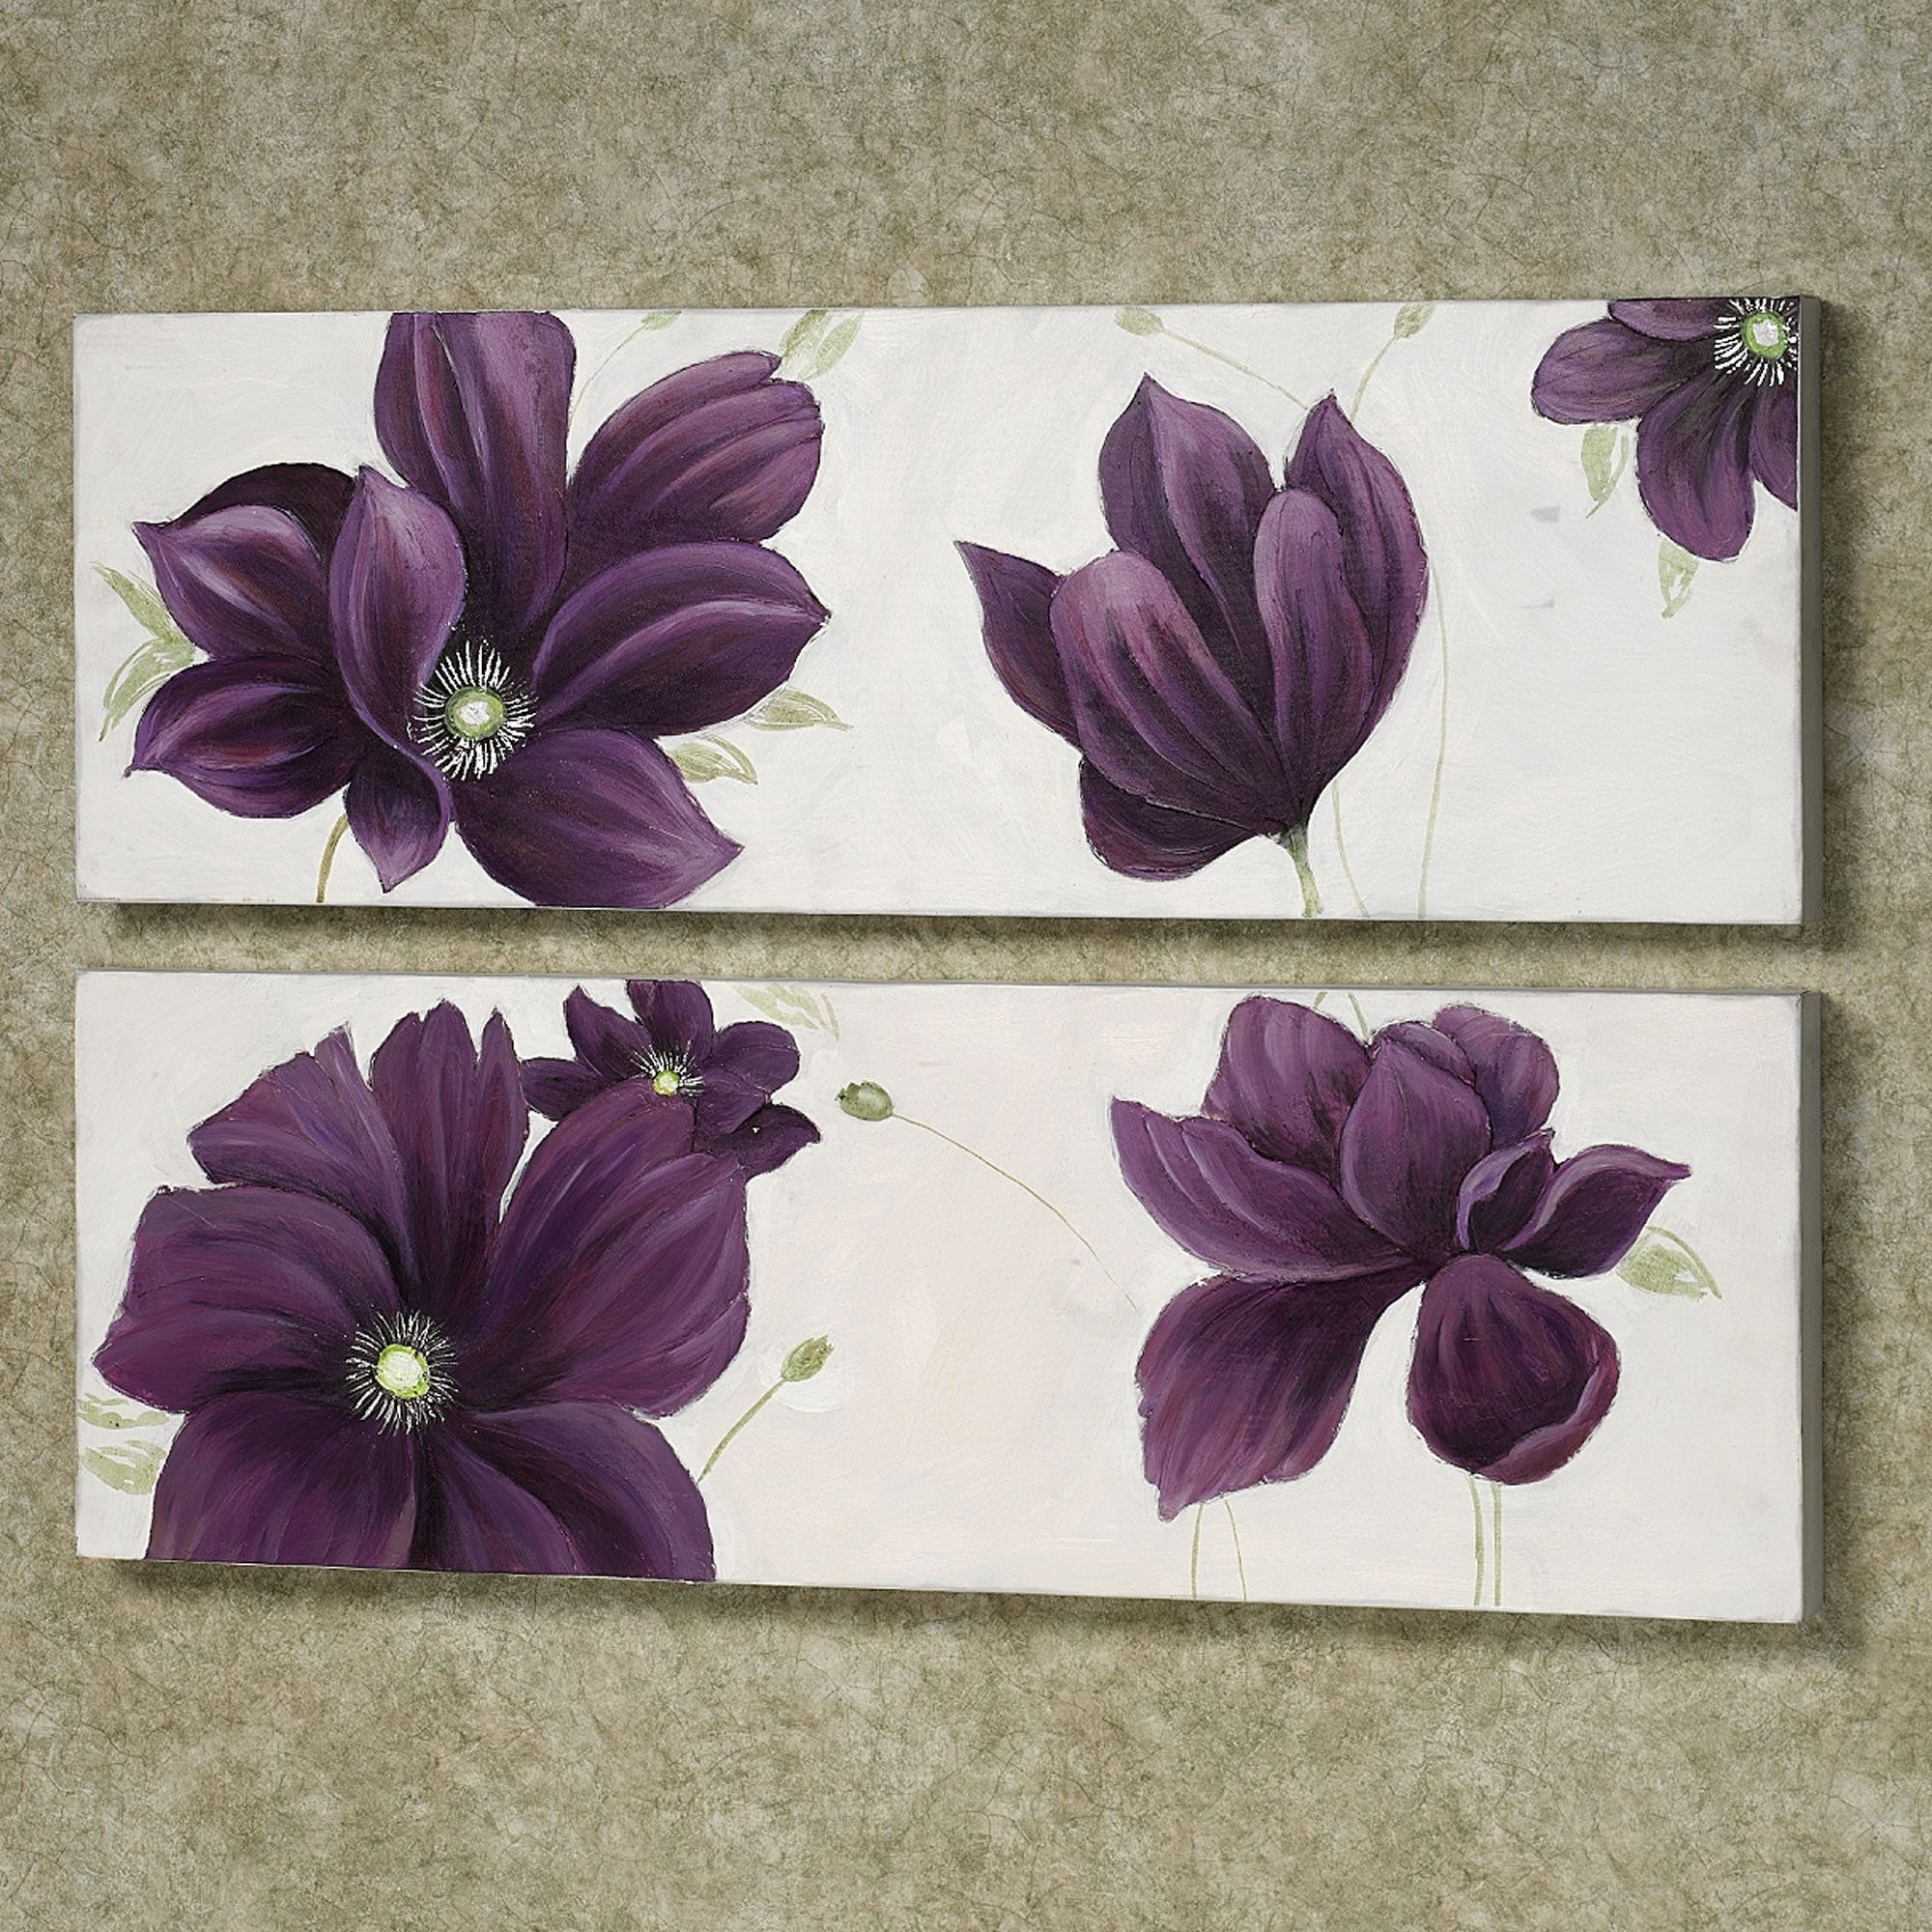 Floral Whispers Canvas Wall Art Set | Ideas For My New Home With Regard To Newest Purple And Grey Wall Art (View 6 of 20)